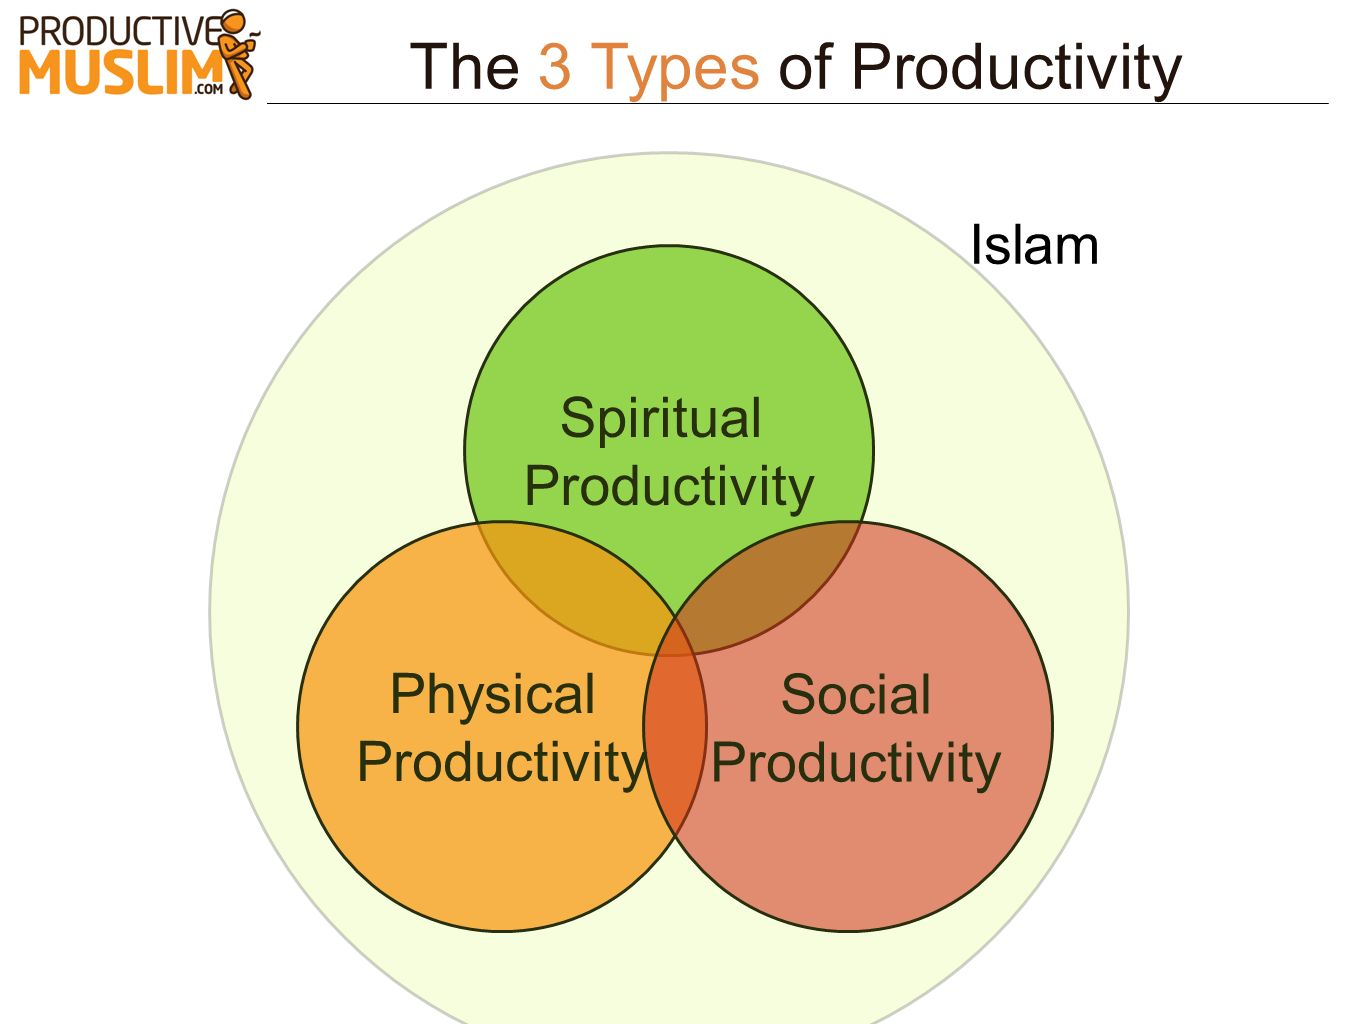 The 3 Types of Productivity